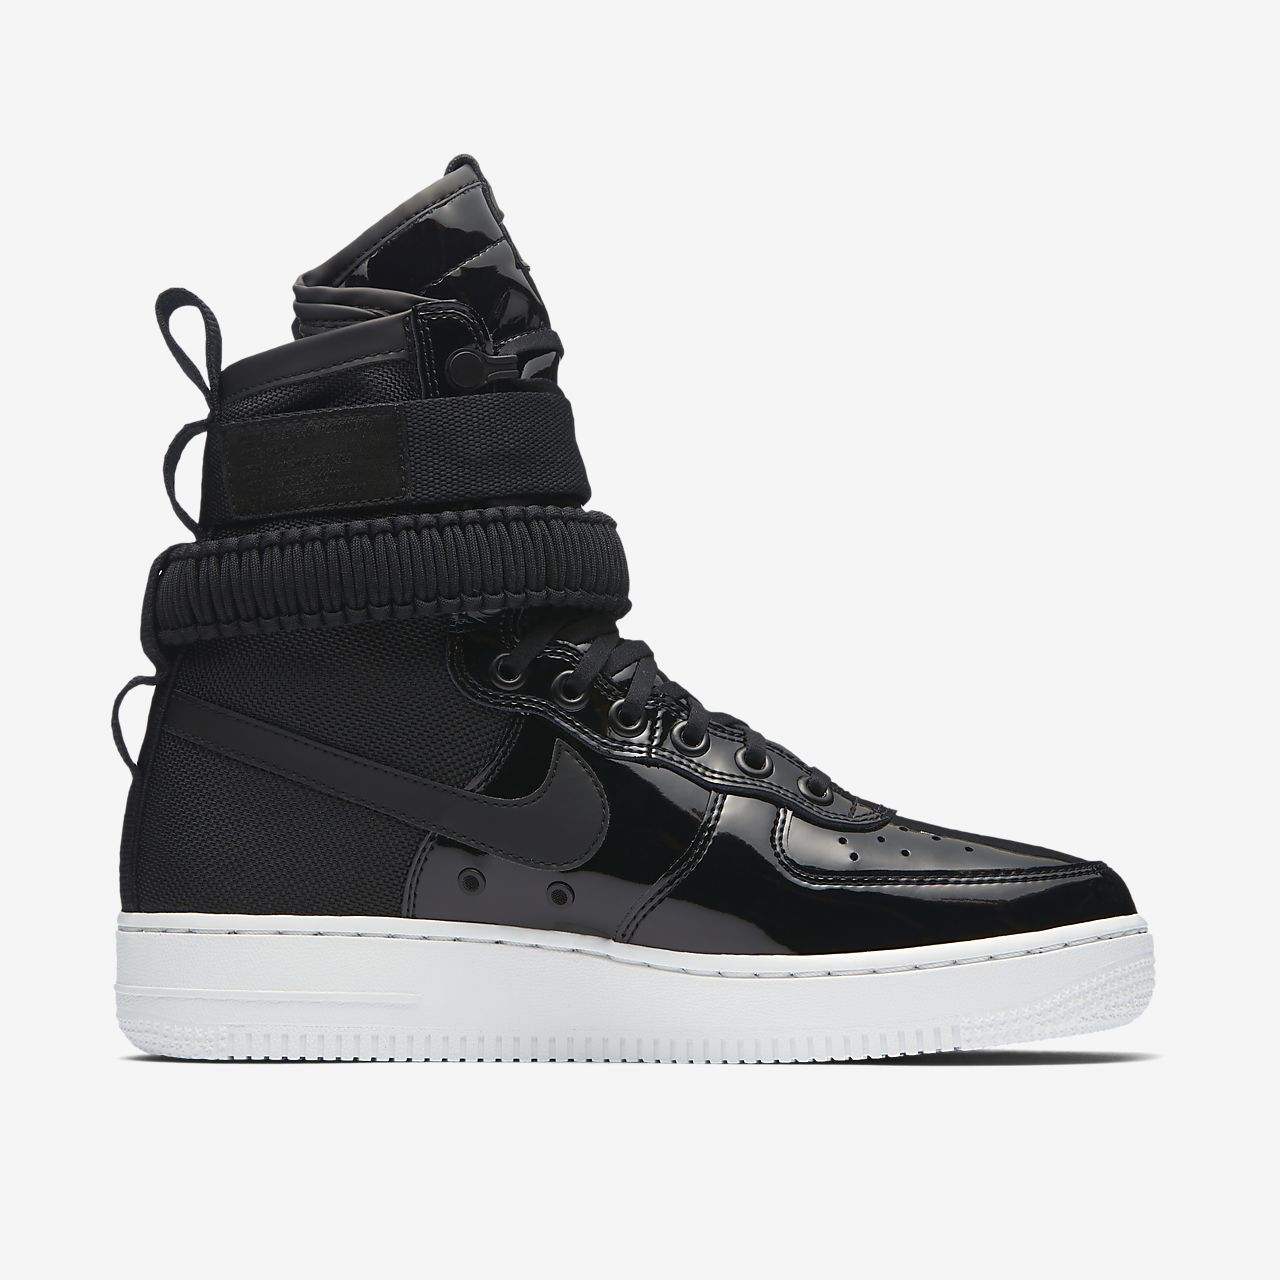 nike air force 1 grey high top nz